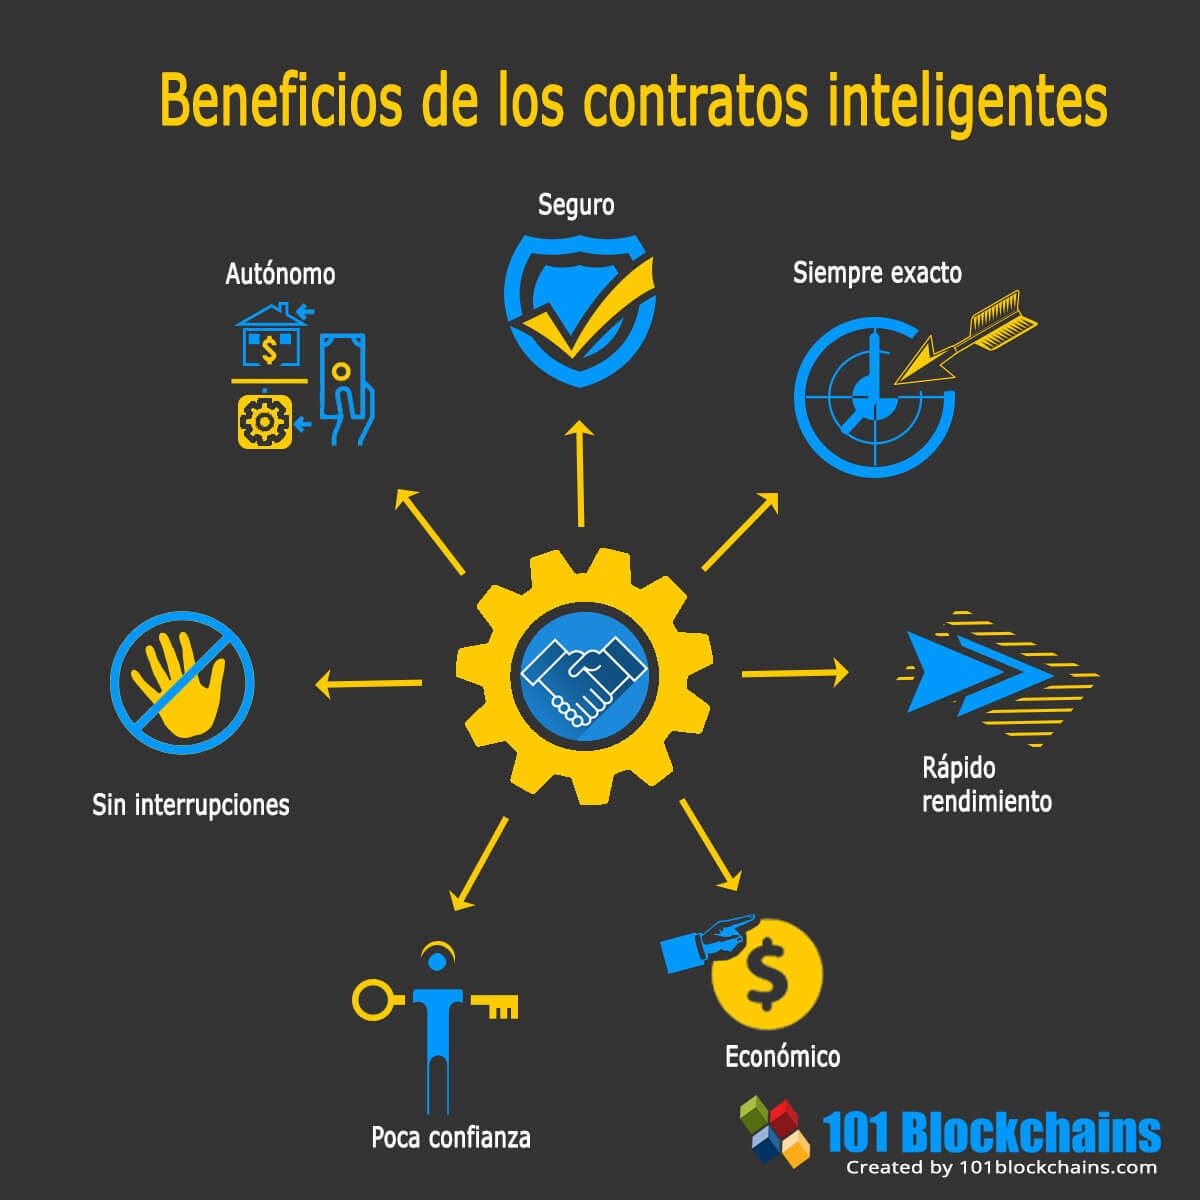 Beneficios de los contratos inteligentes